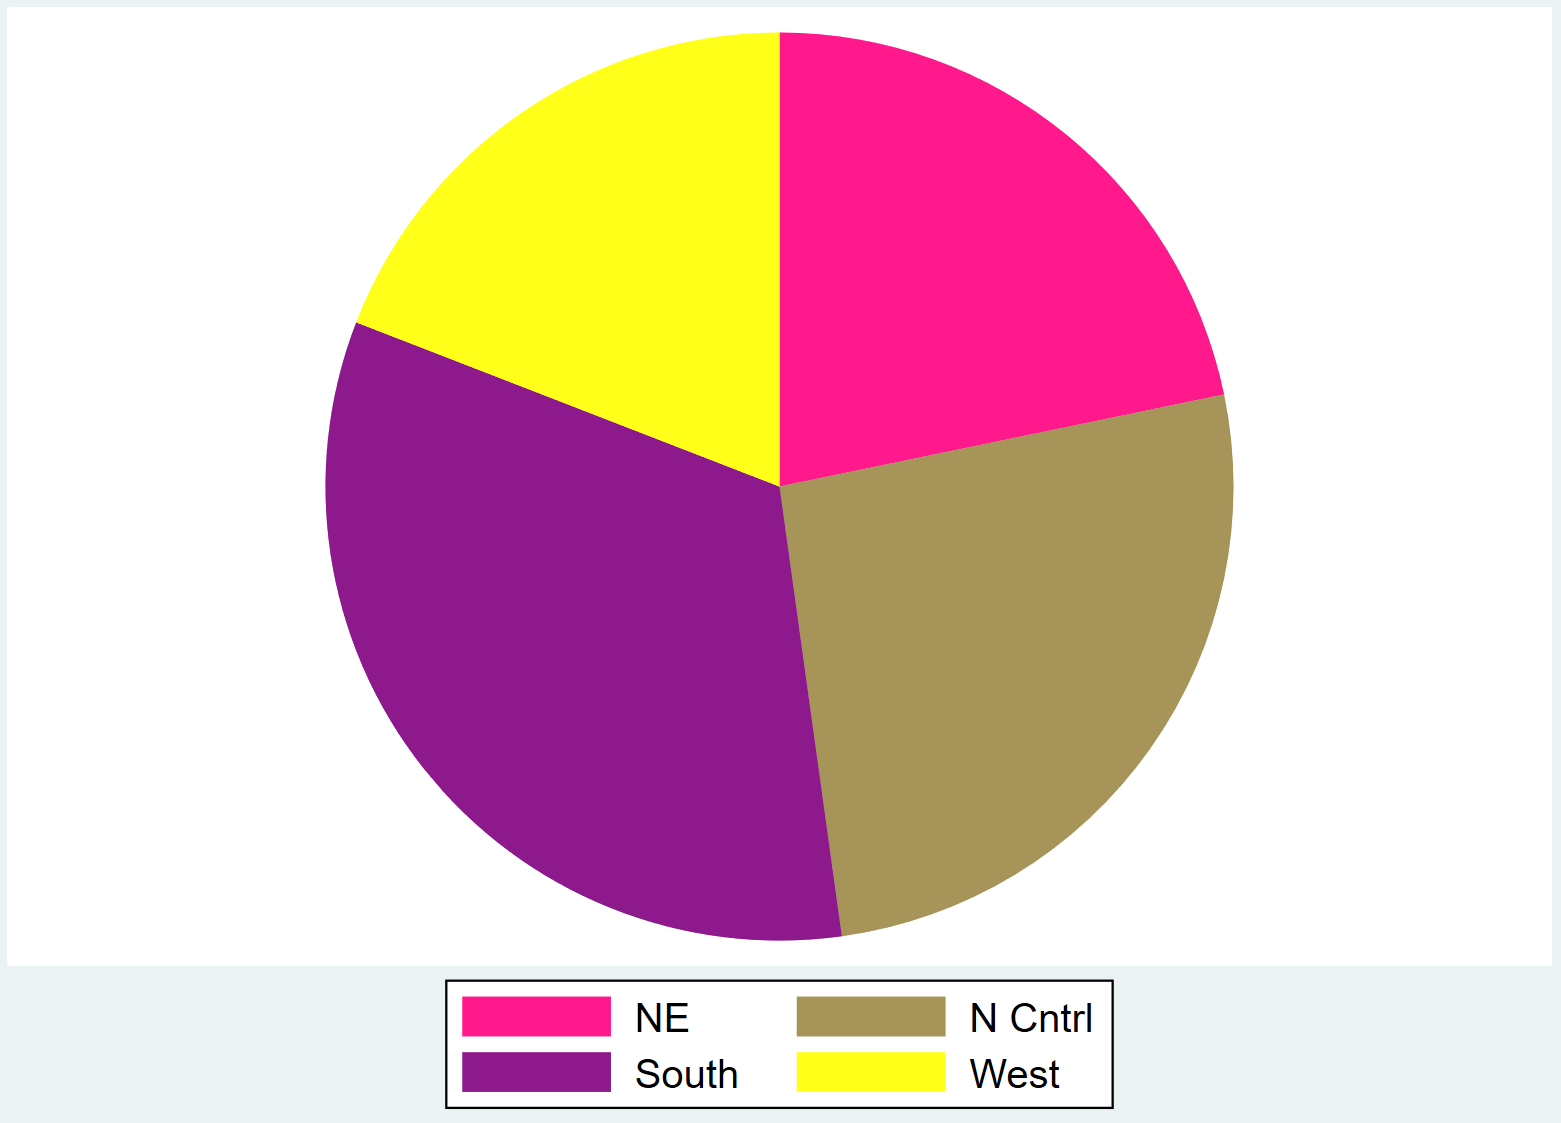 Pie chart in Stata with specified colors